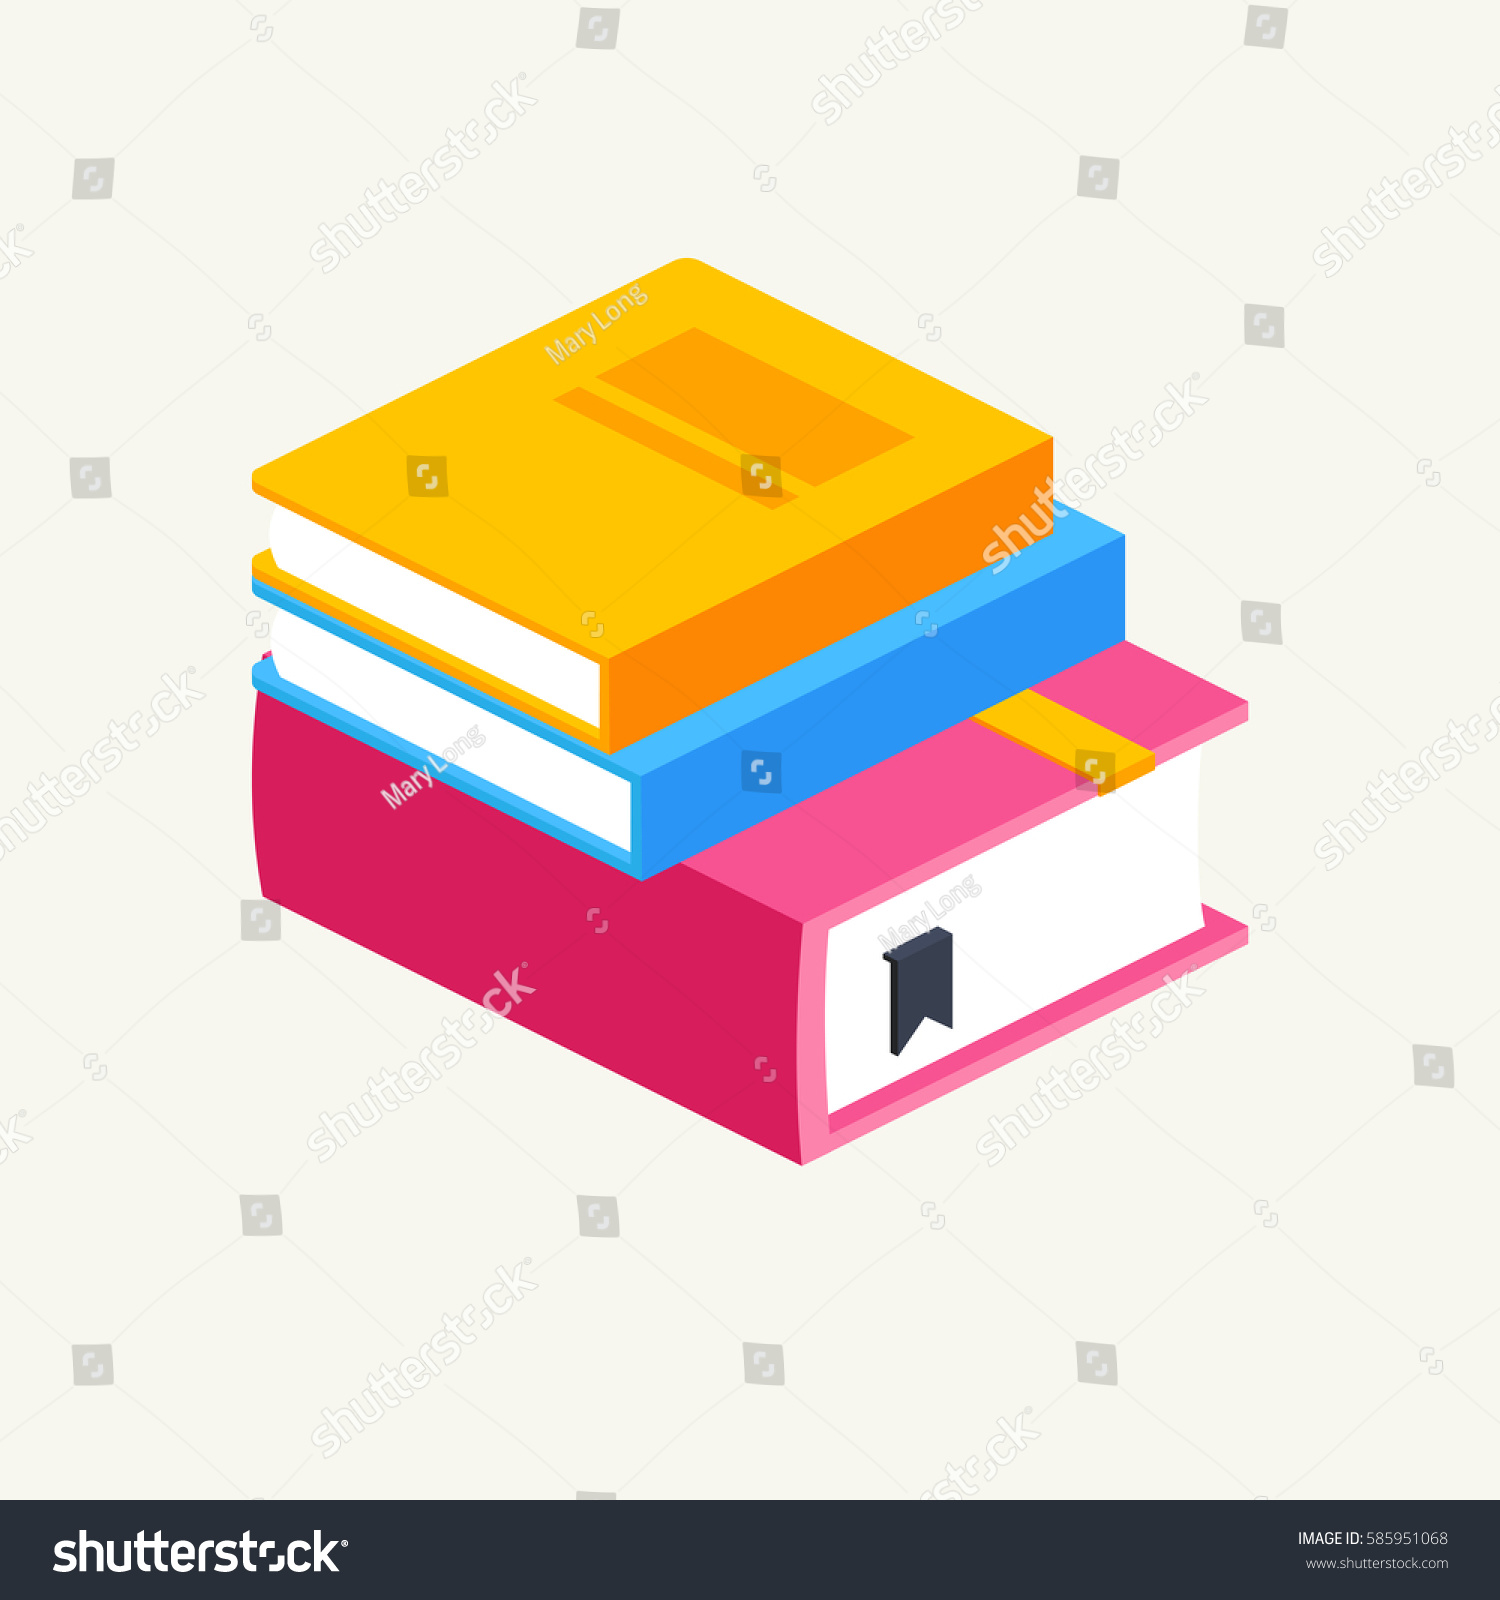 Colorful Stack Three Books Isometricvector Illustration